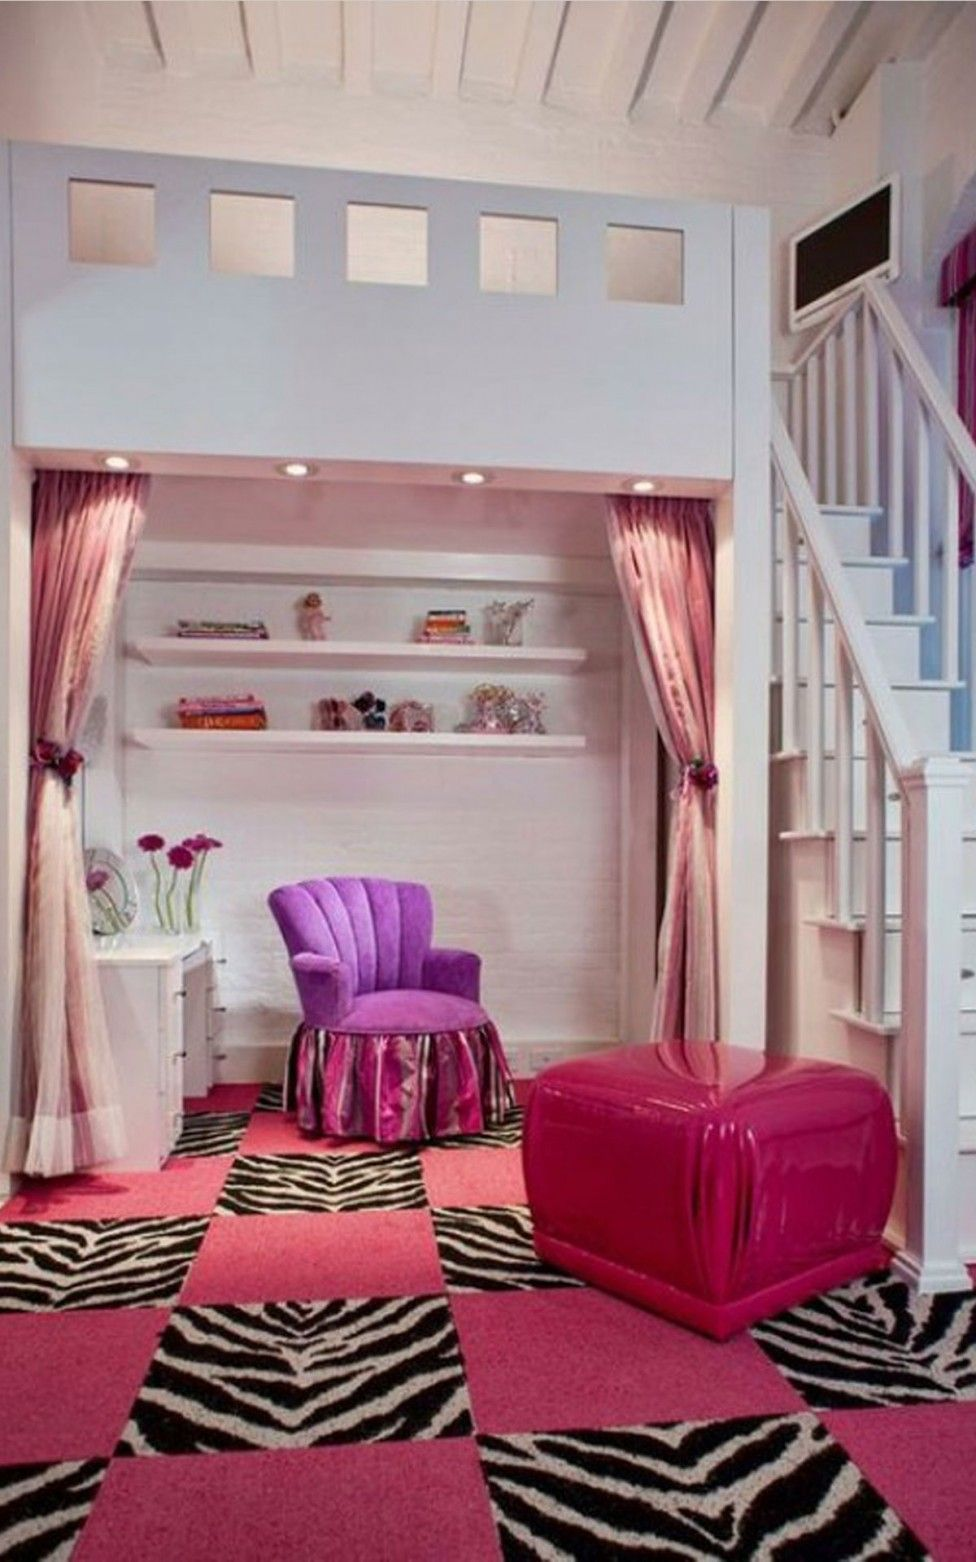 Small room ideas for girls with cute color bedroom 22 for Cute bedroom ideas